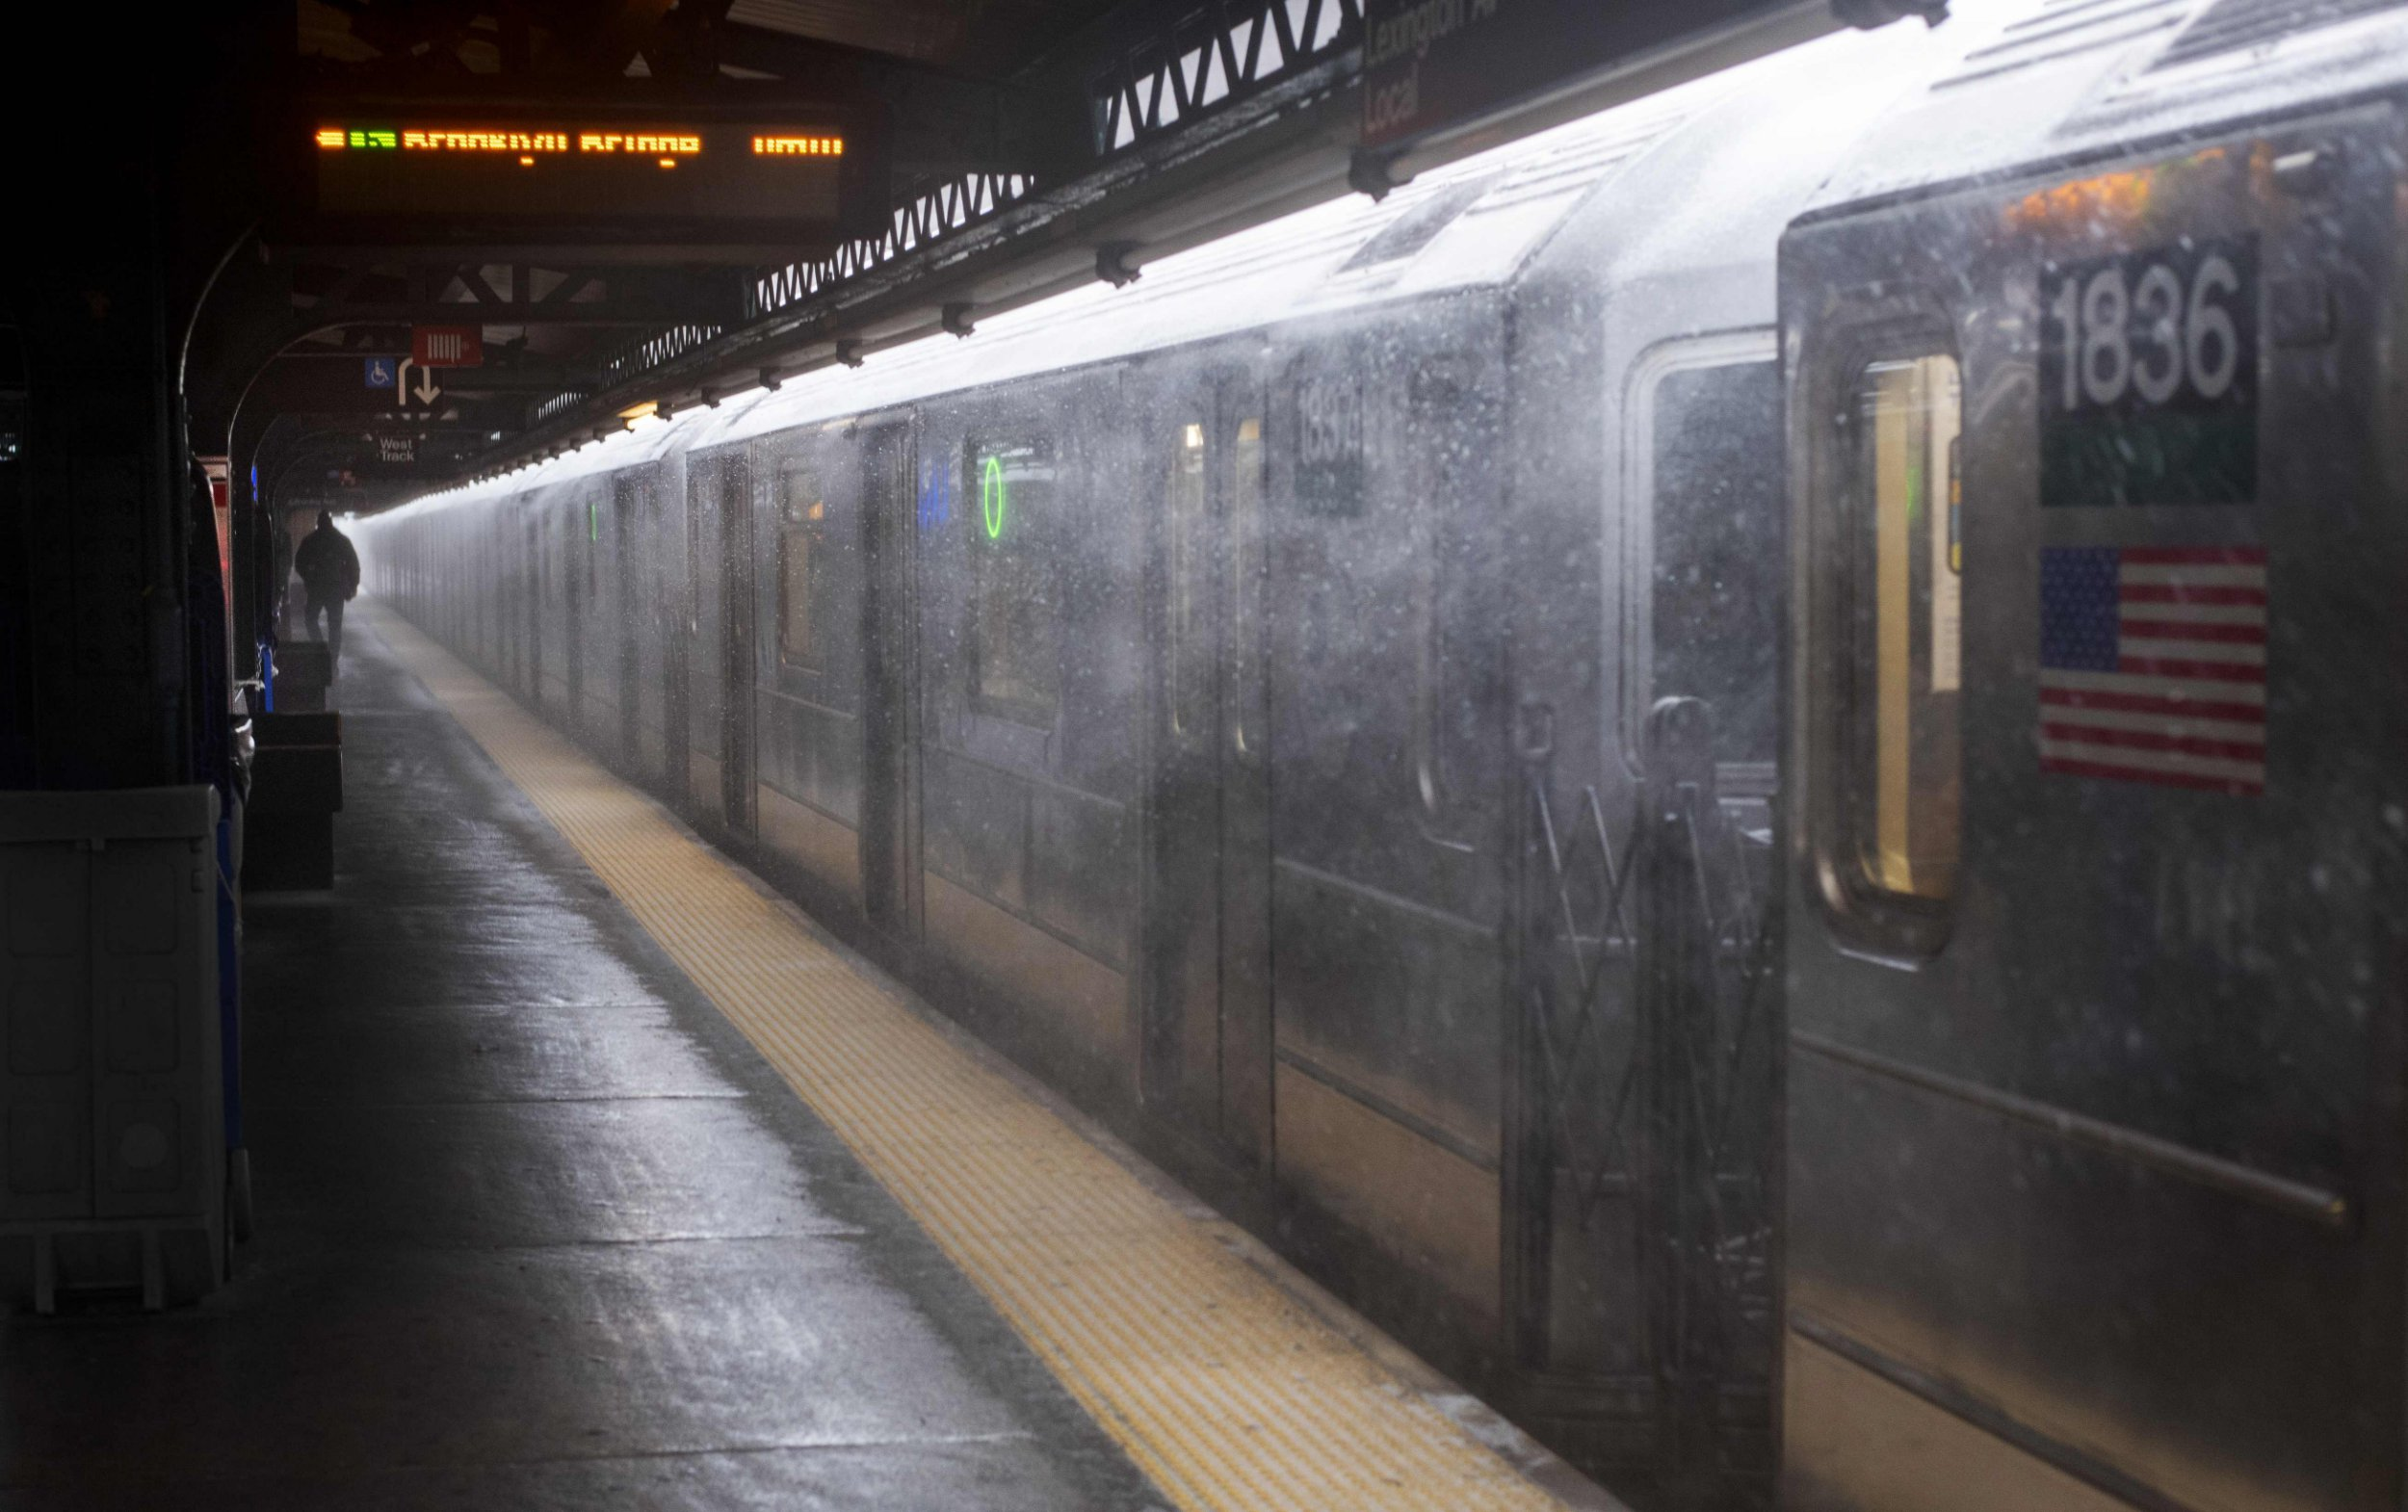 A man walks next to a subway train as heavy snow falls on January 30, 2019 in New York. - The polar vortex that hit the Midwest has moved to the east bringing high winds and freezing temperatures. (Photo by Don EMMERT / AFP)DON EMMERT/AFP/Getty Images